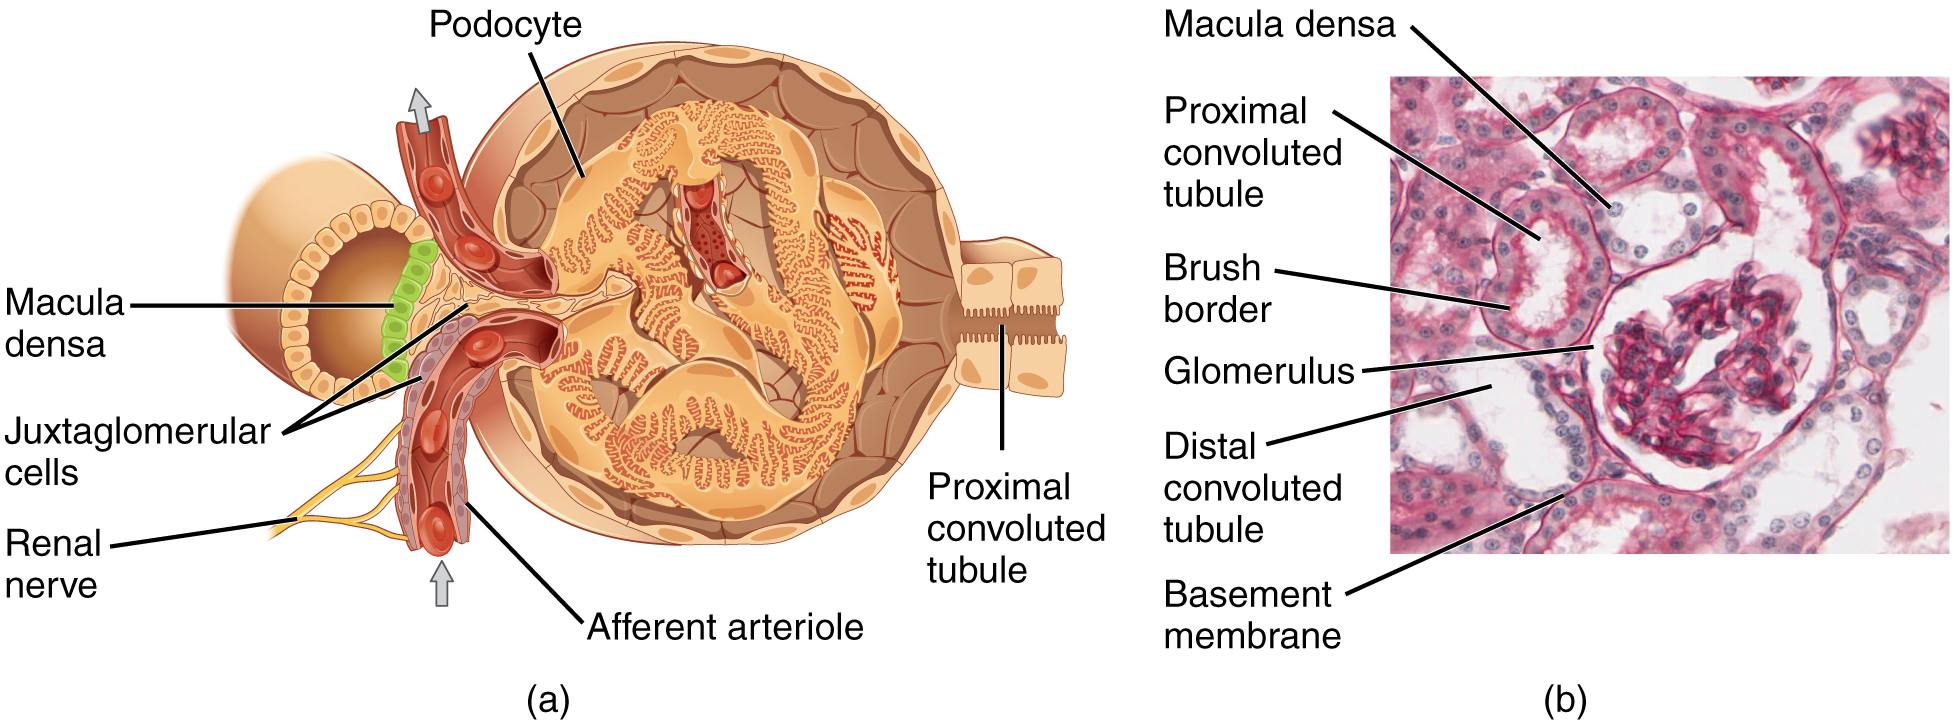 hight resolution of the top panel of this image shows the cross section of the juxtaglomerular apparatus the